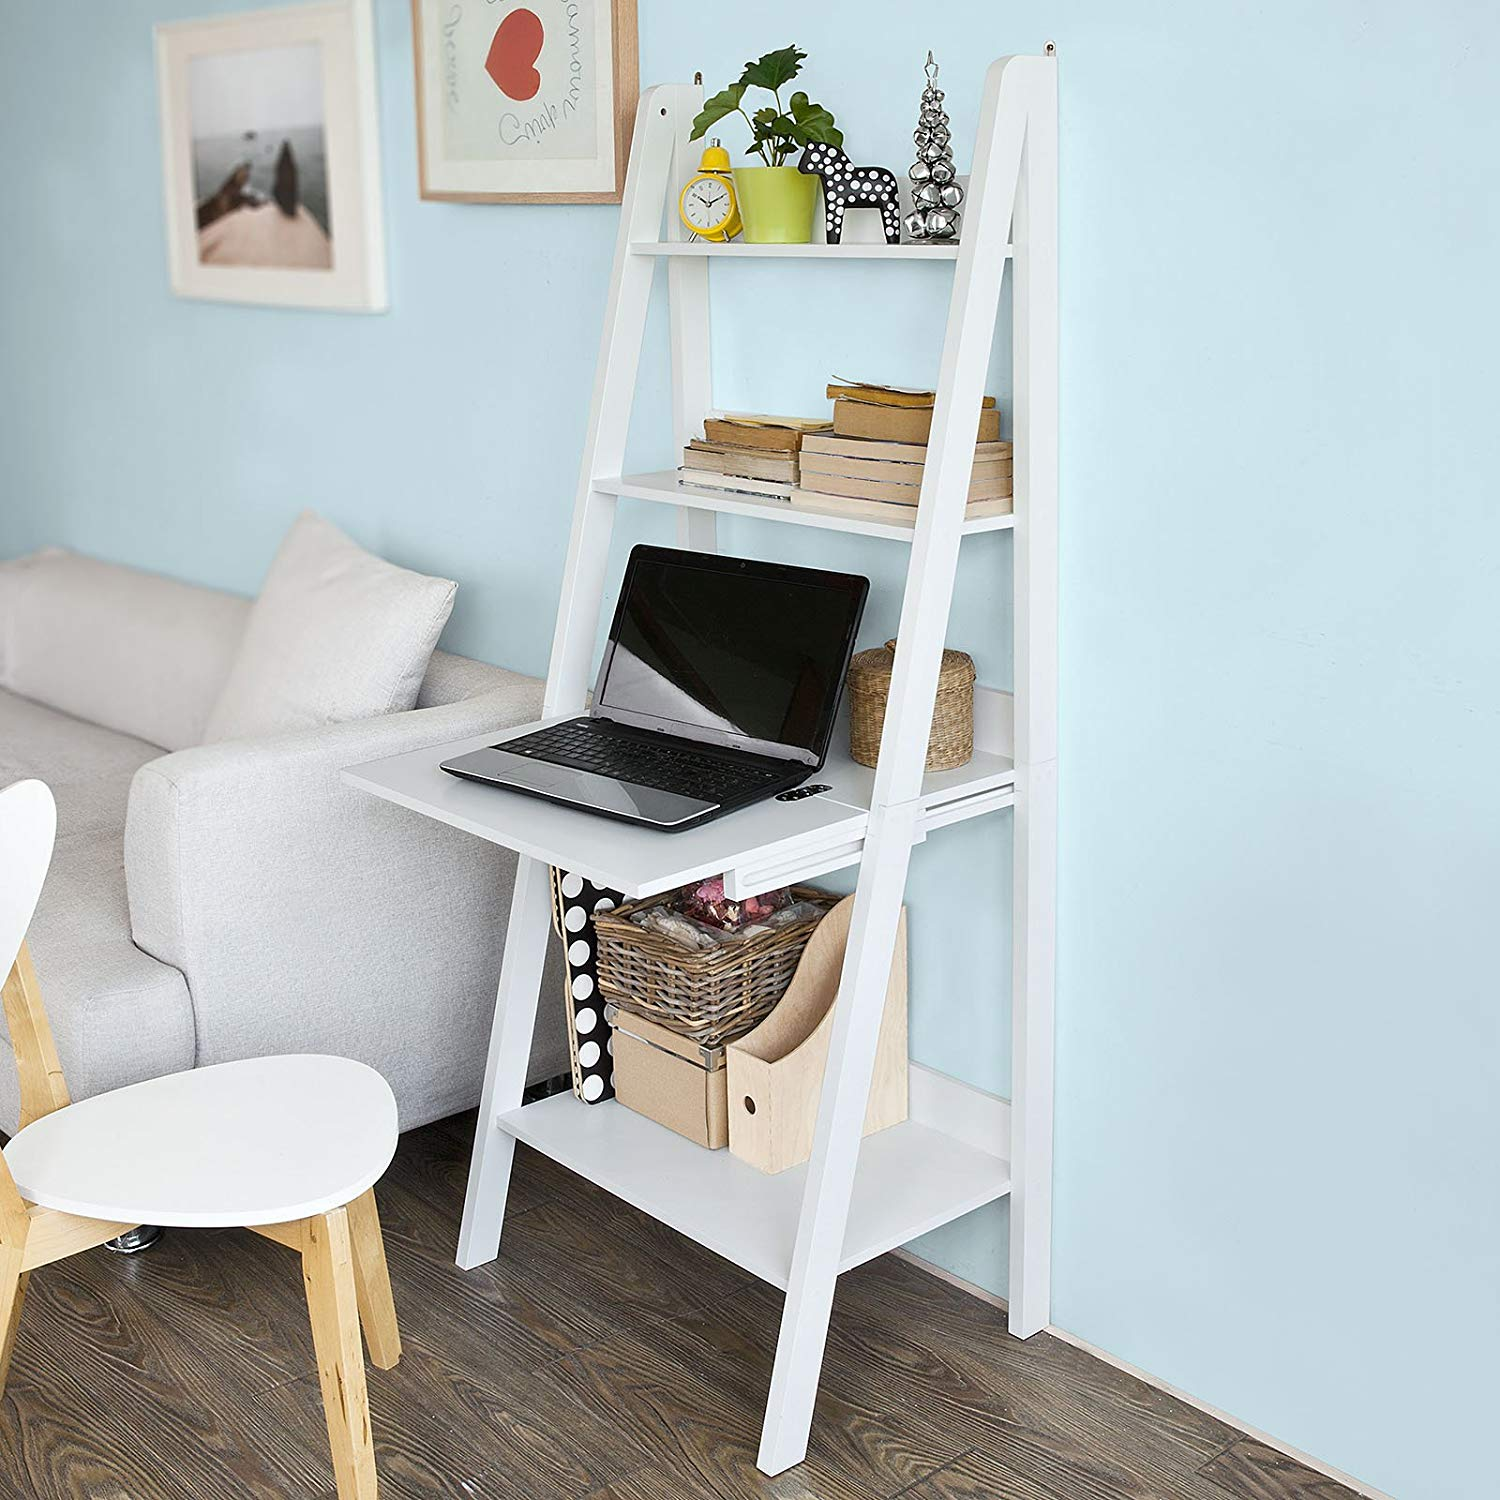 - Best Desks For Small Living Spaces & Homes 2020